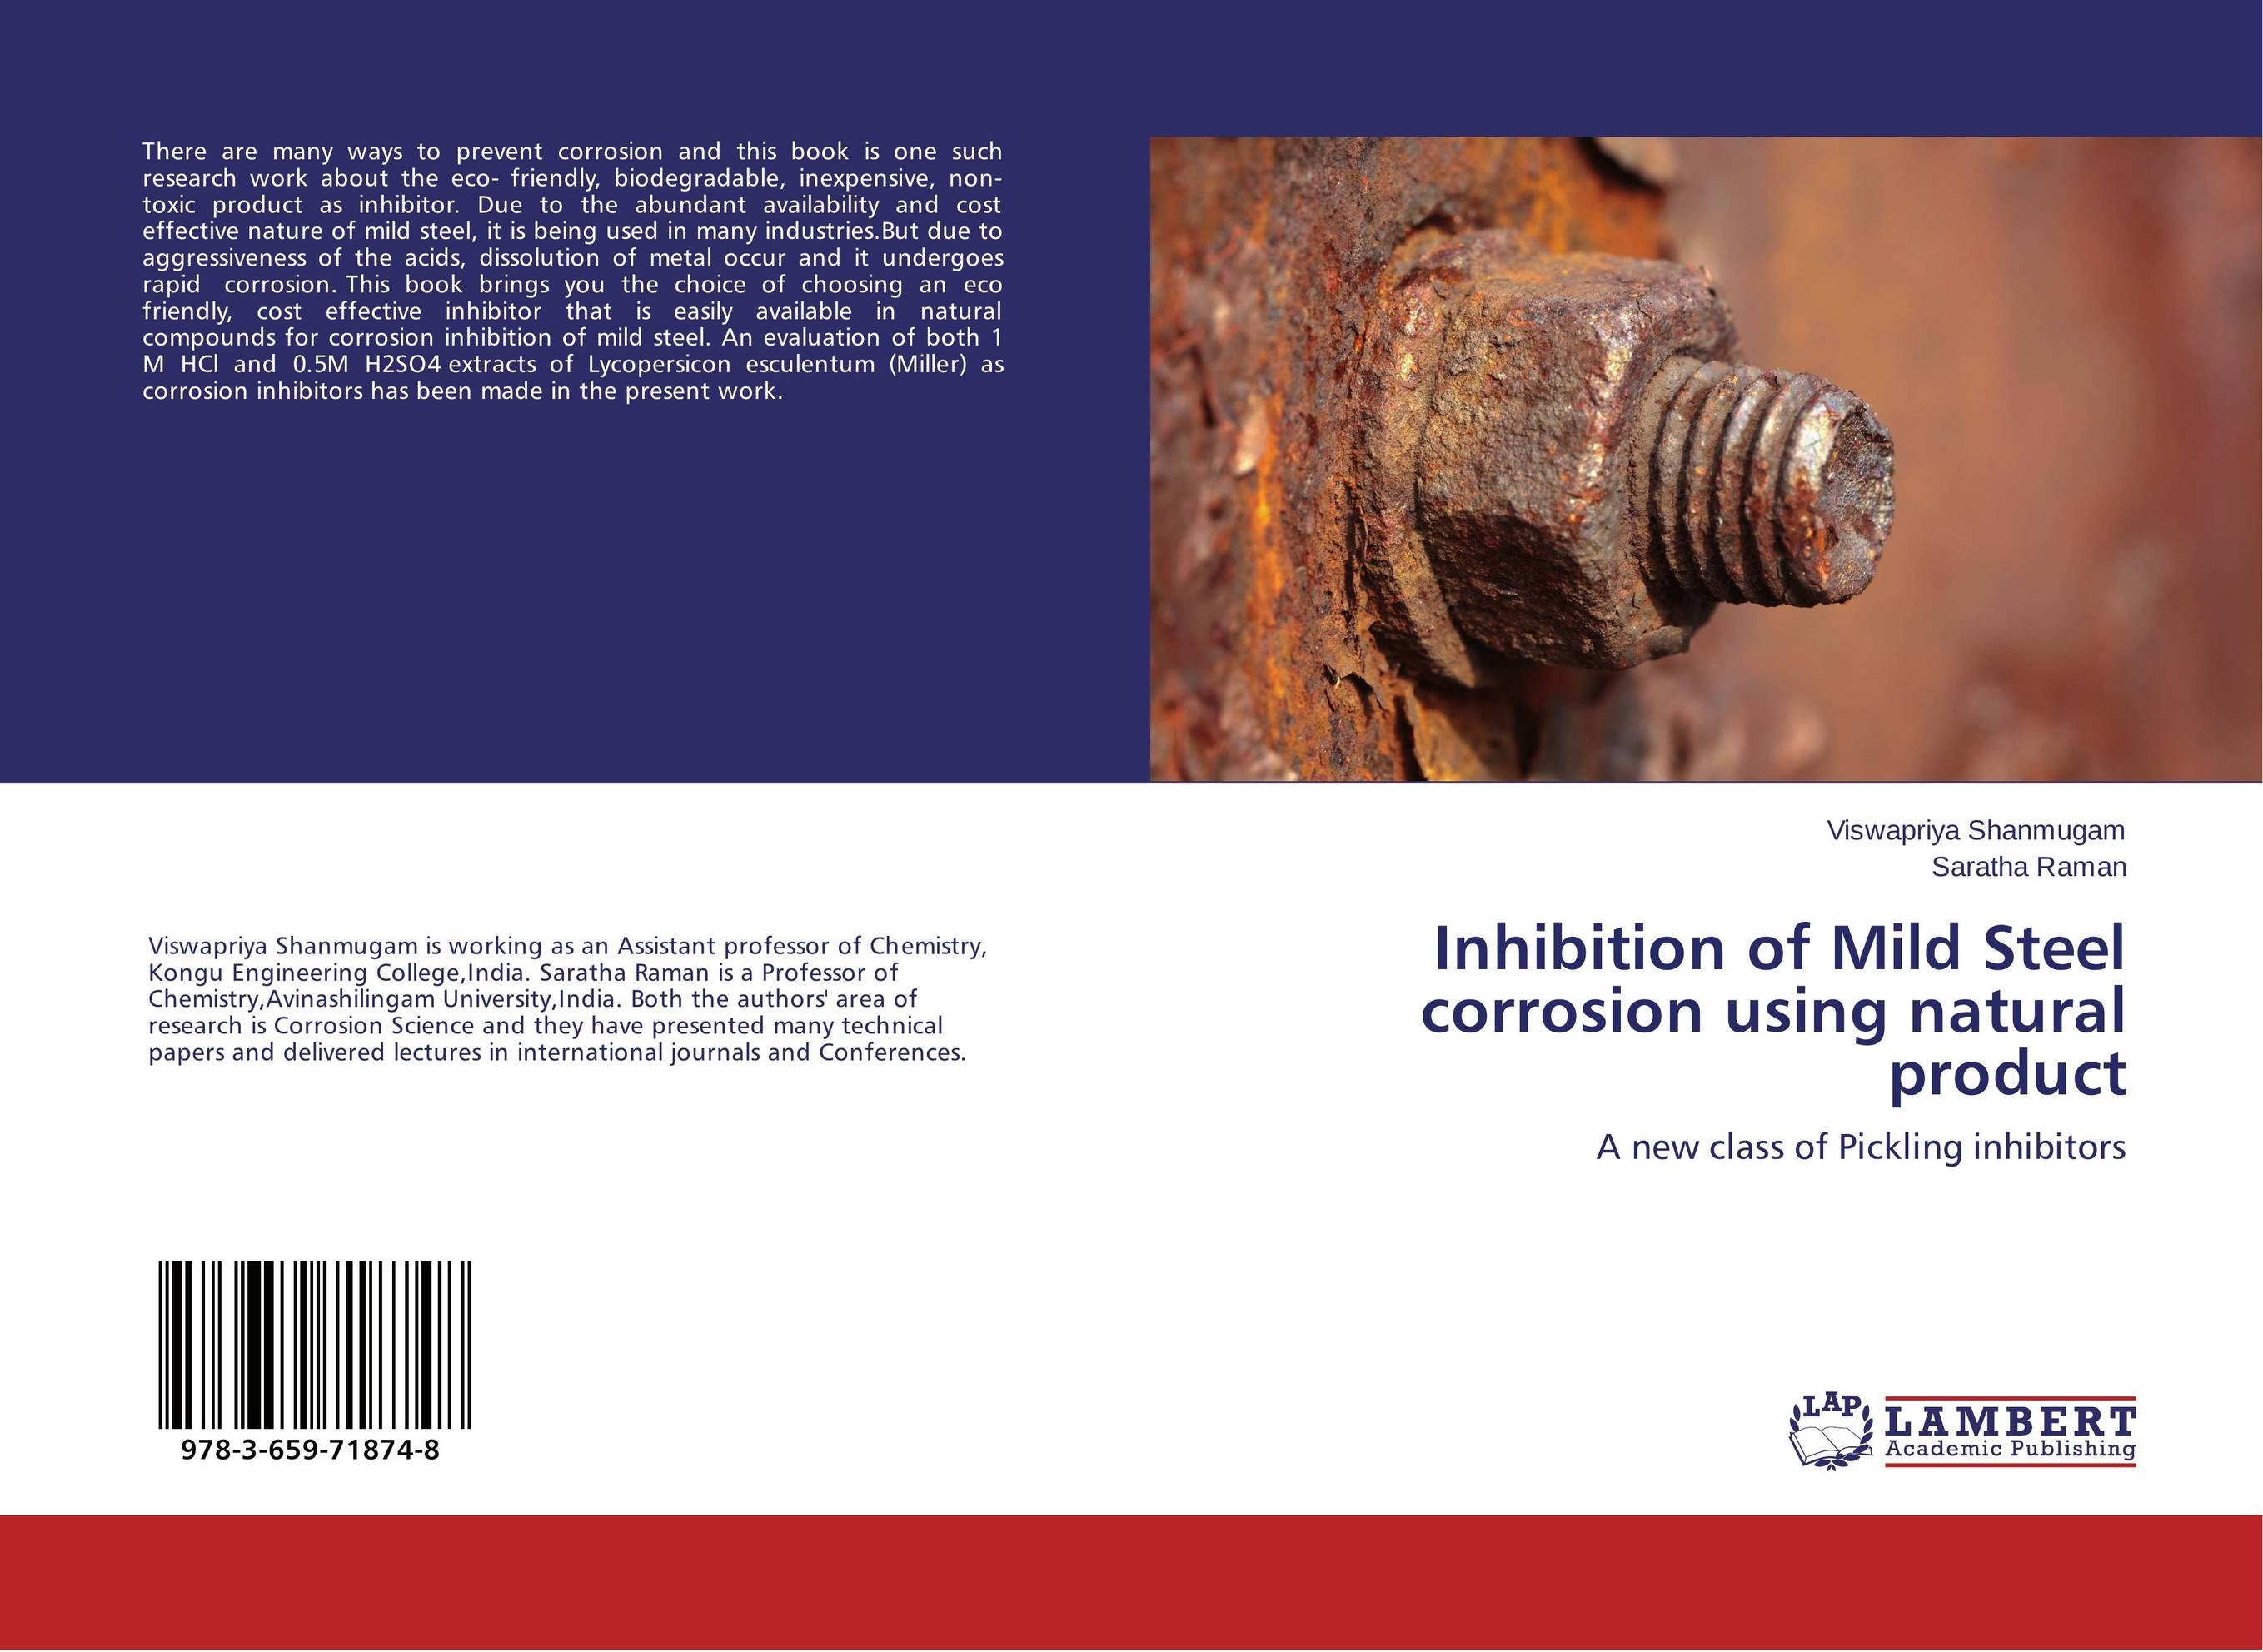 Inhibition of Mild Steel corrosion using natural product